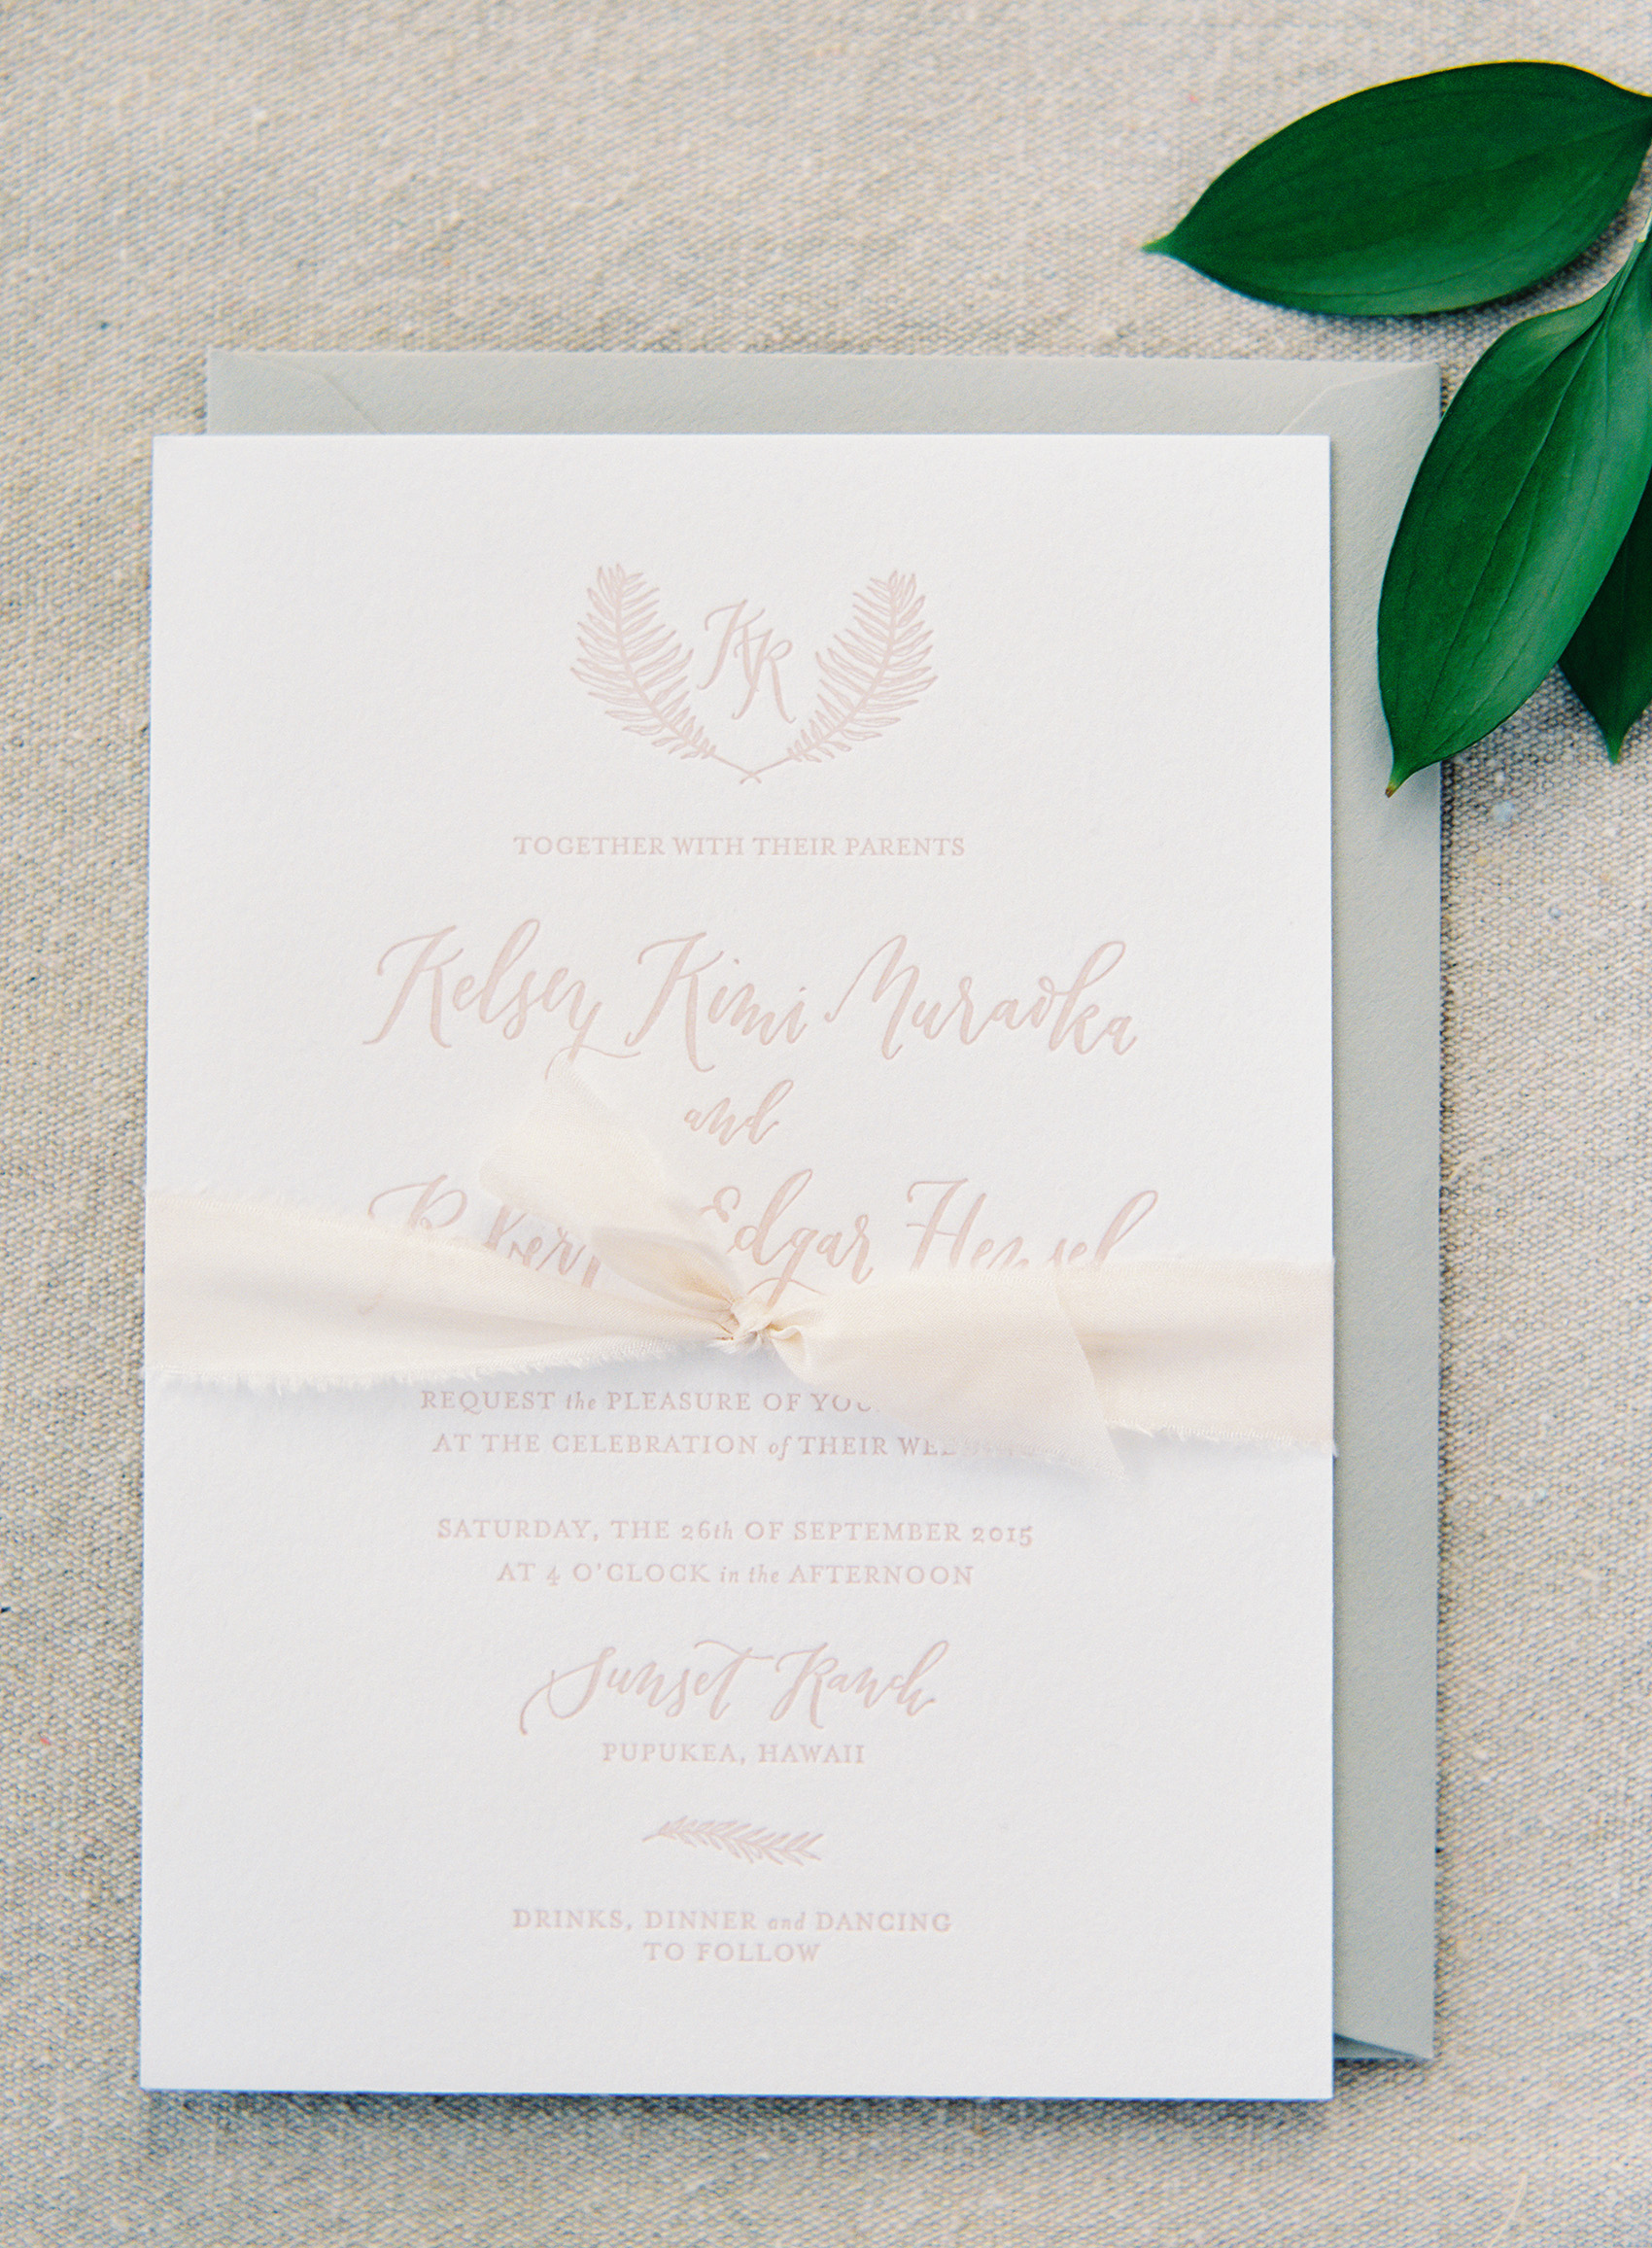 la Happy Calligraphy and Design letterpress invitation